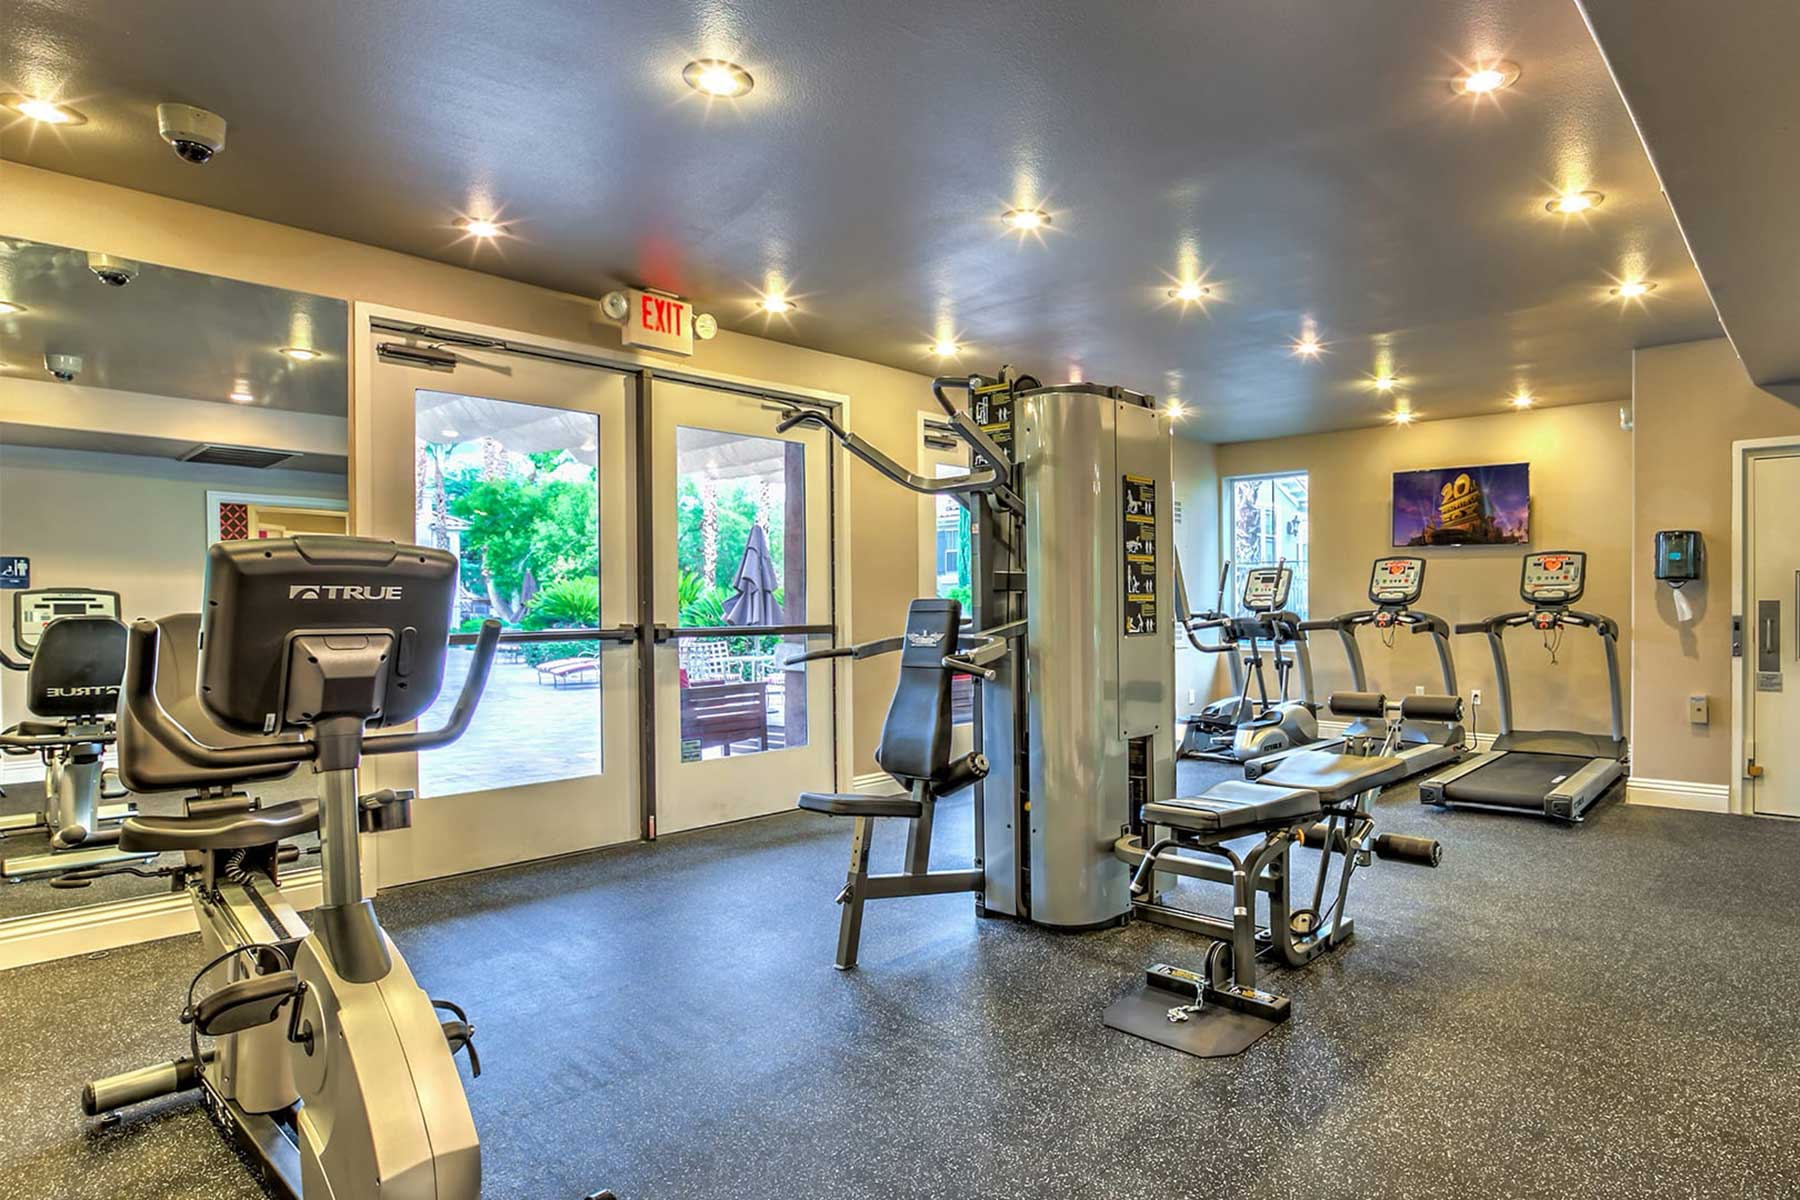 Venicia fitness center with weight machines and cardio equipment.